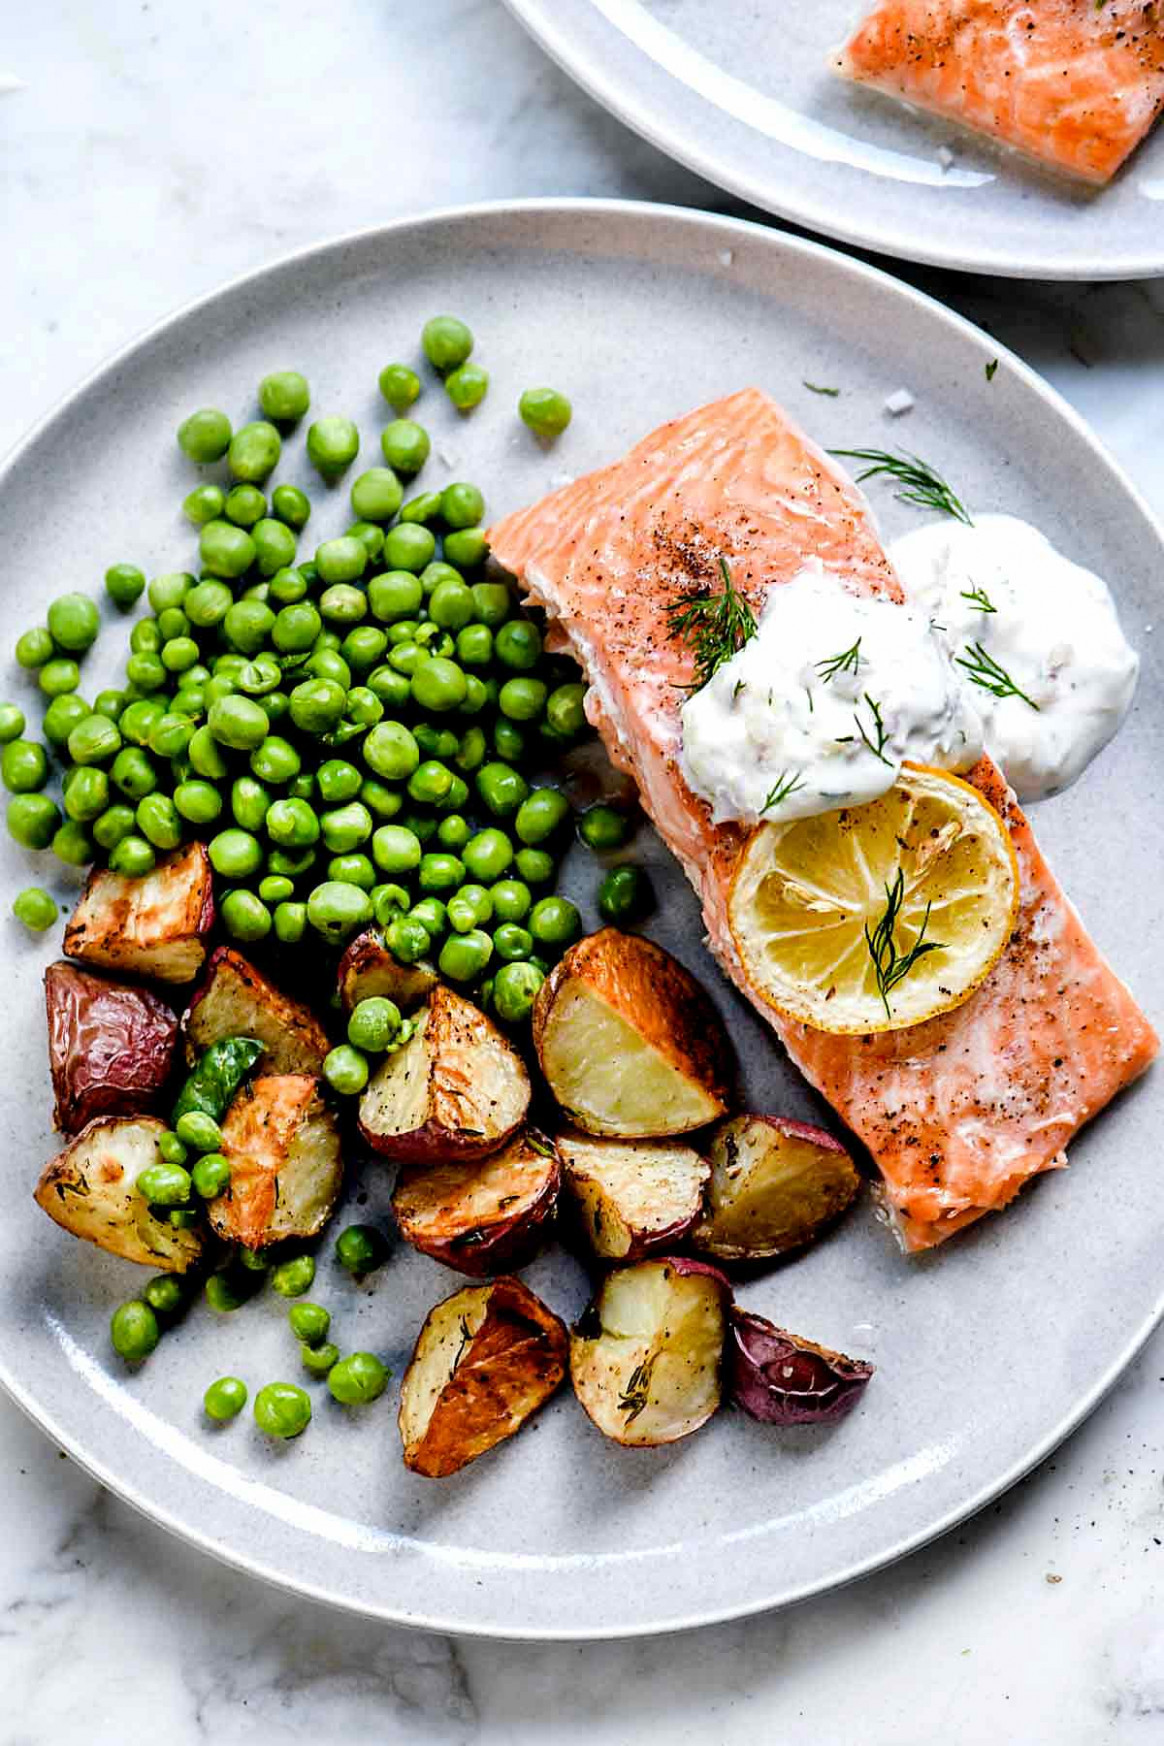 Baked Salmon With Creme Fraiche - Healthy Recipes Nz